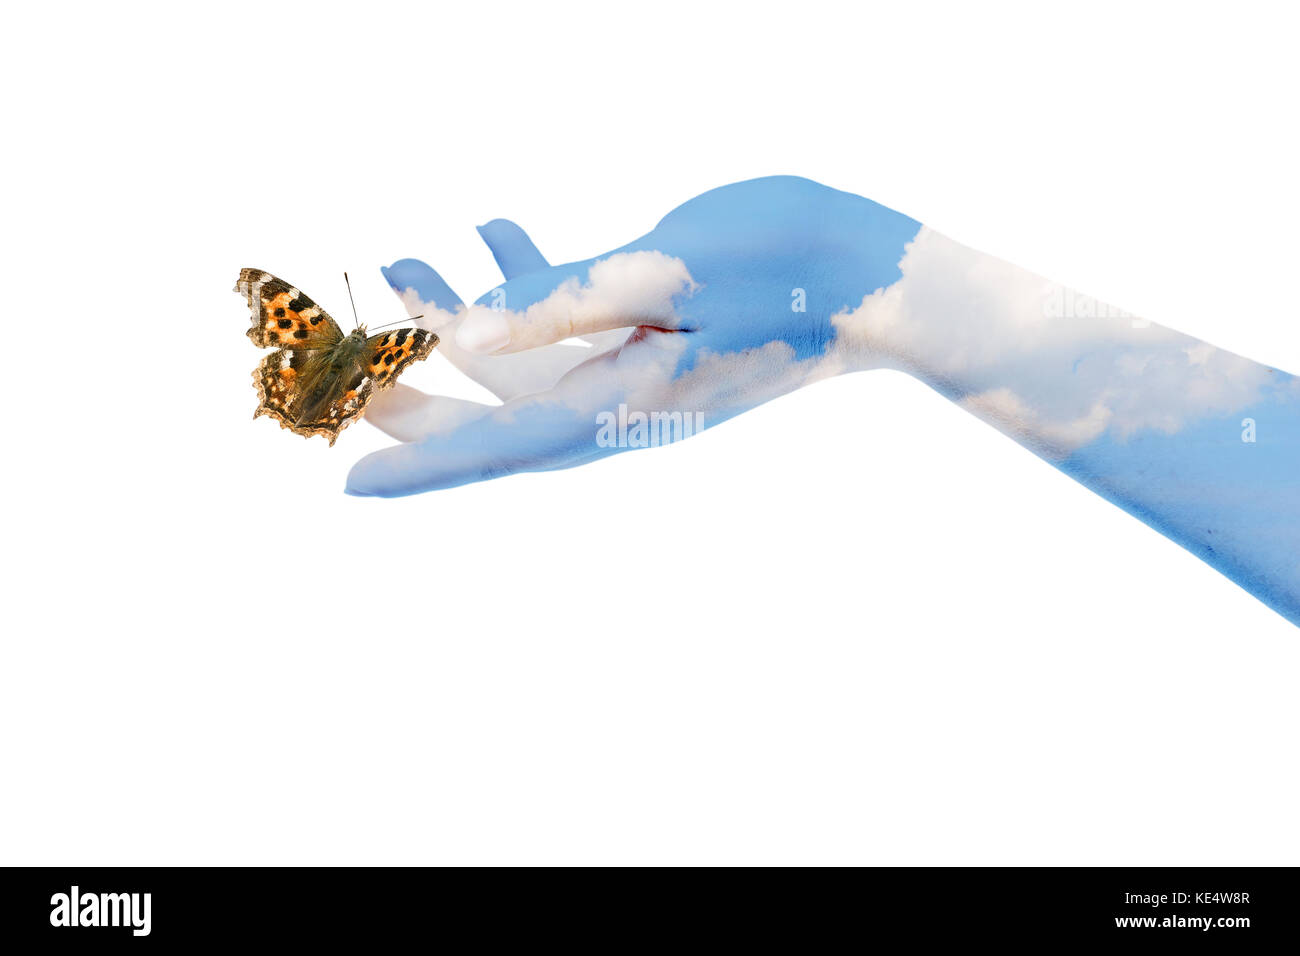 Womans hands letting the butterfly be free to go - Stock Image